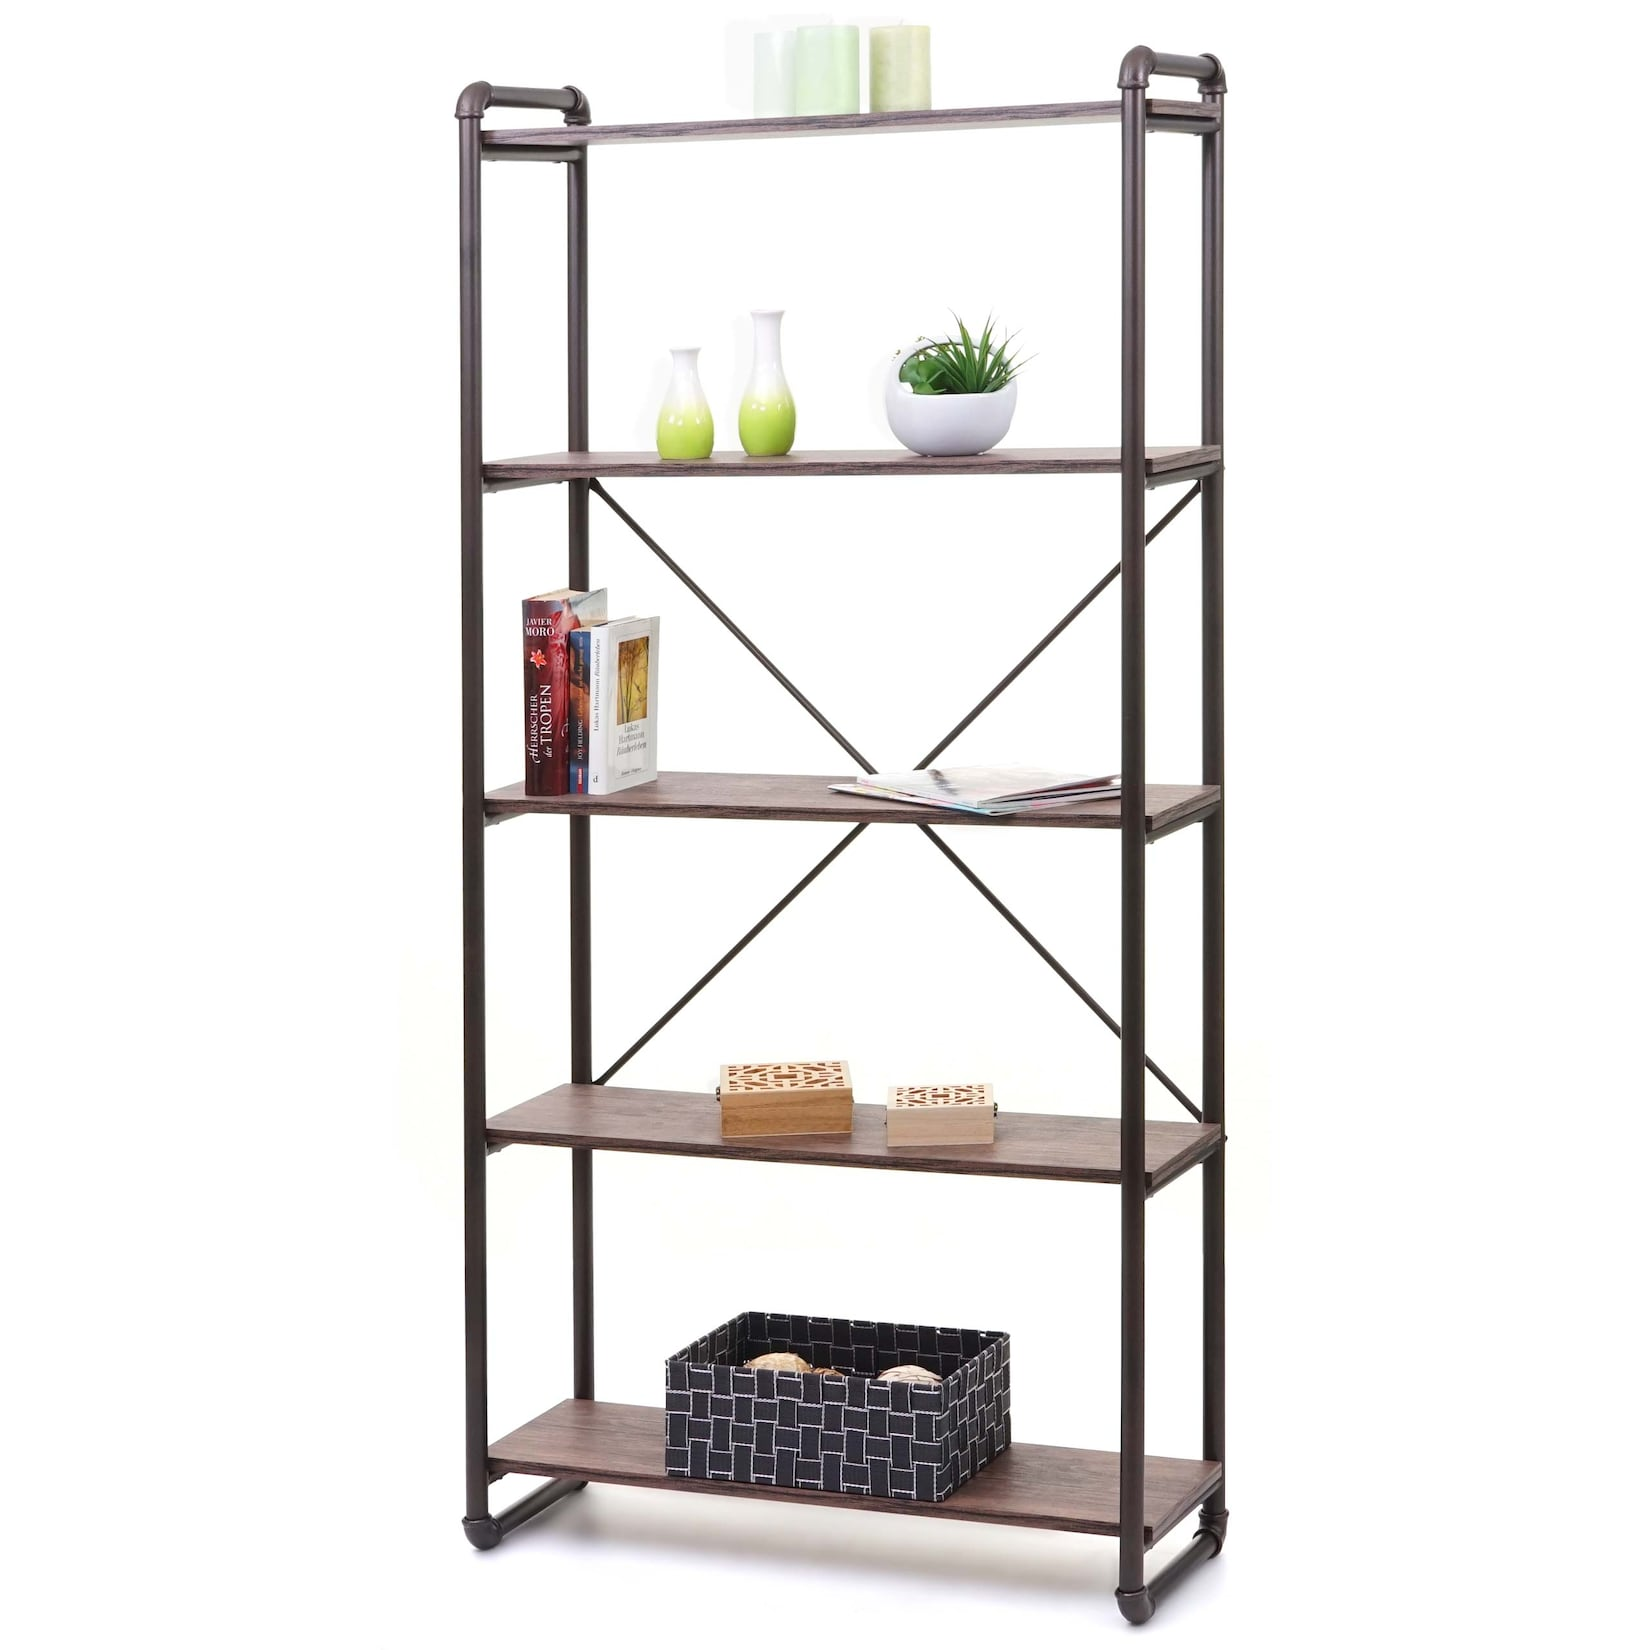 Bücherregal MCW-F58, Standregal Wohnregal, Industriedesign 165x80cm 3D-Struktur ~ braun Wildeiche-Optik von MCW